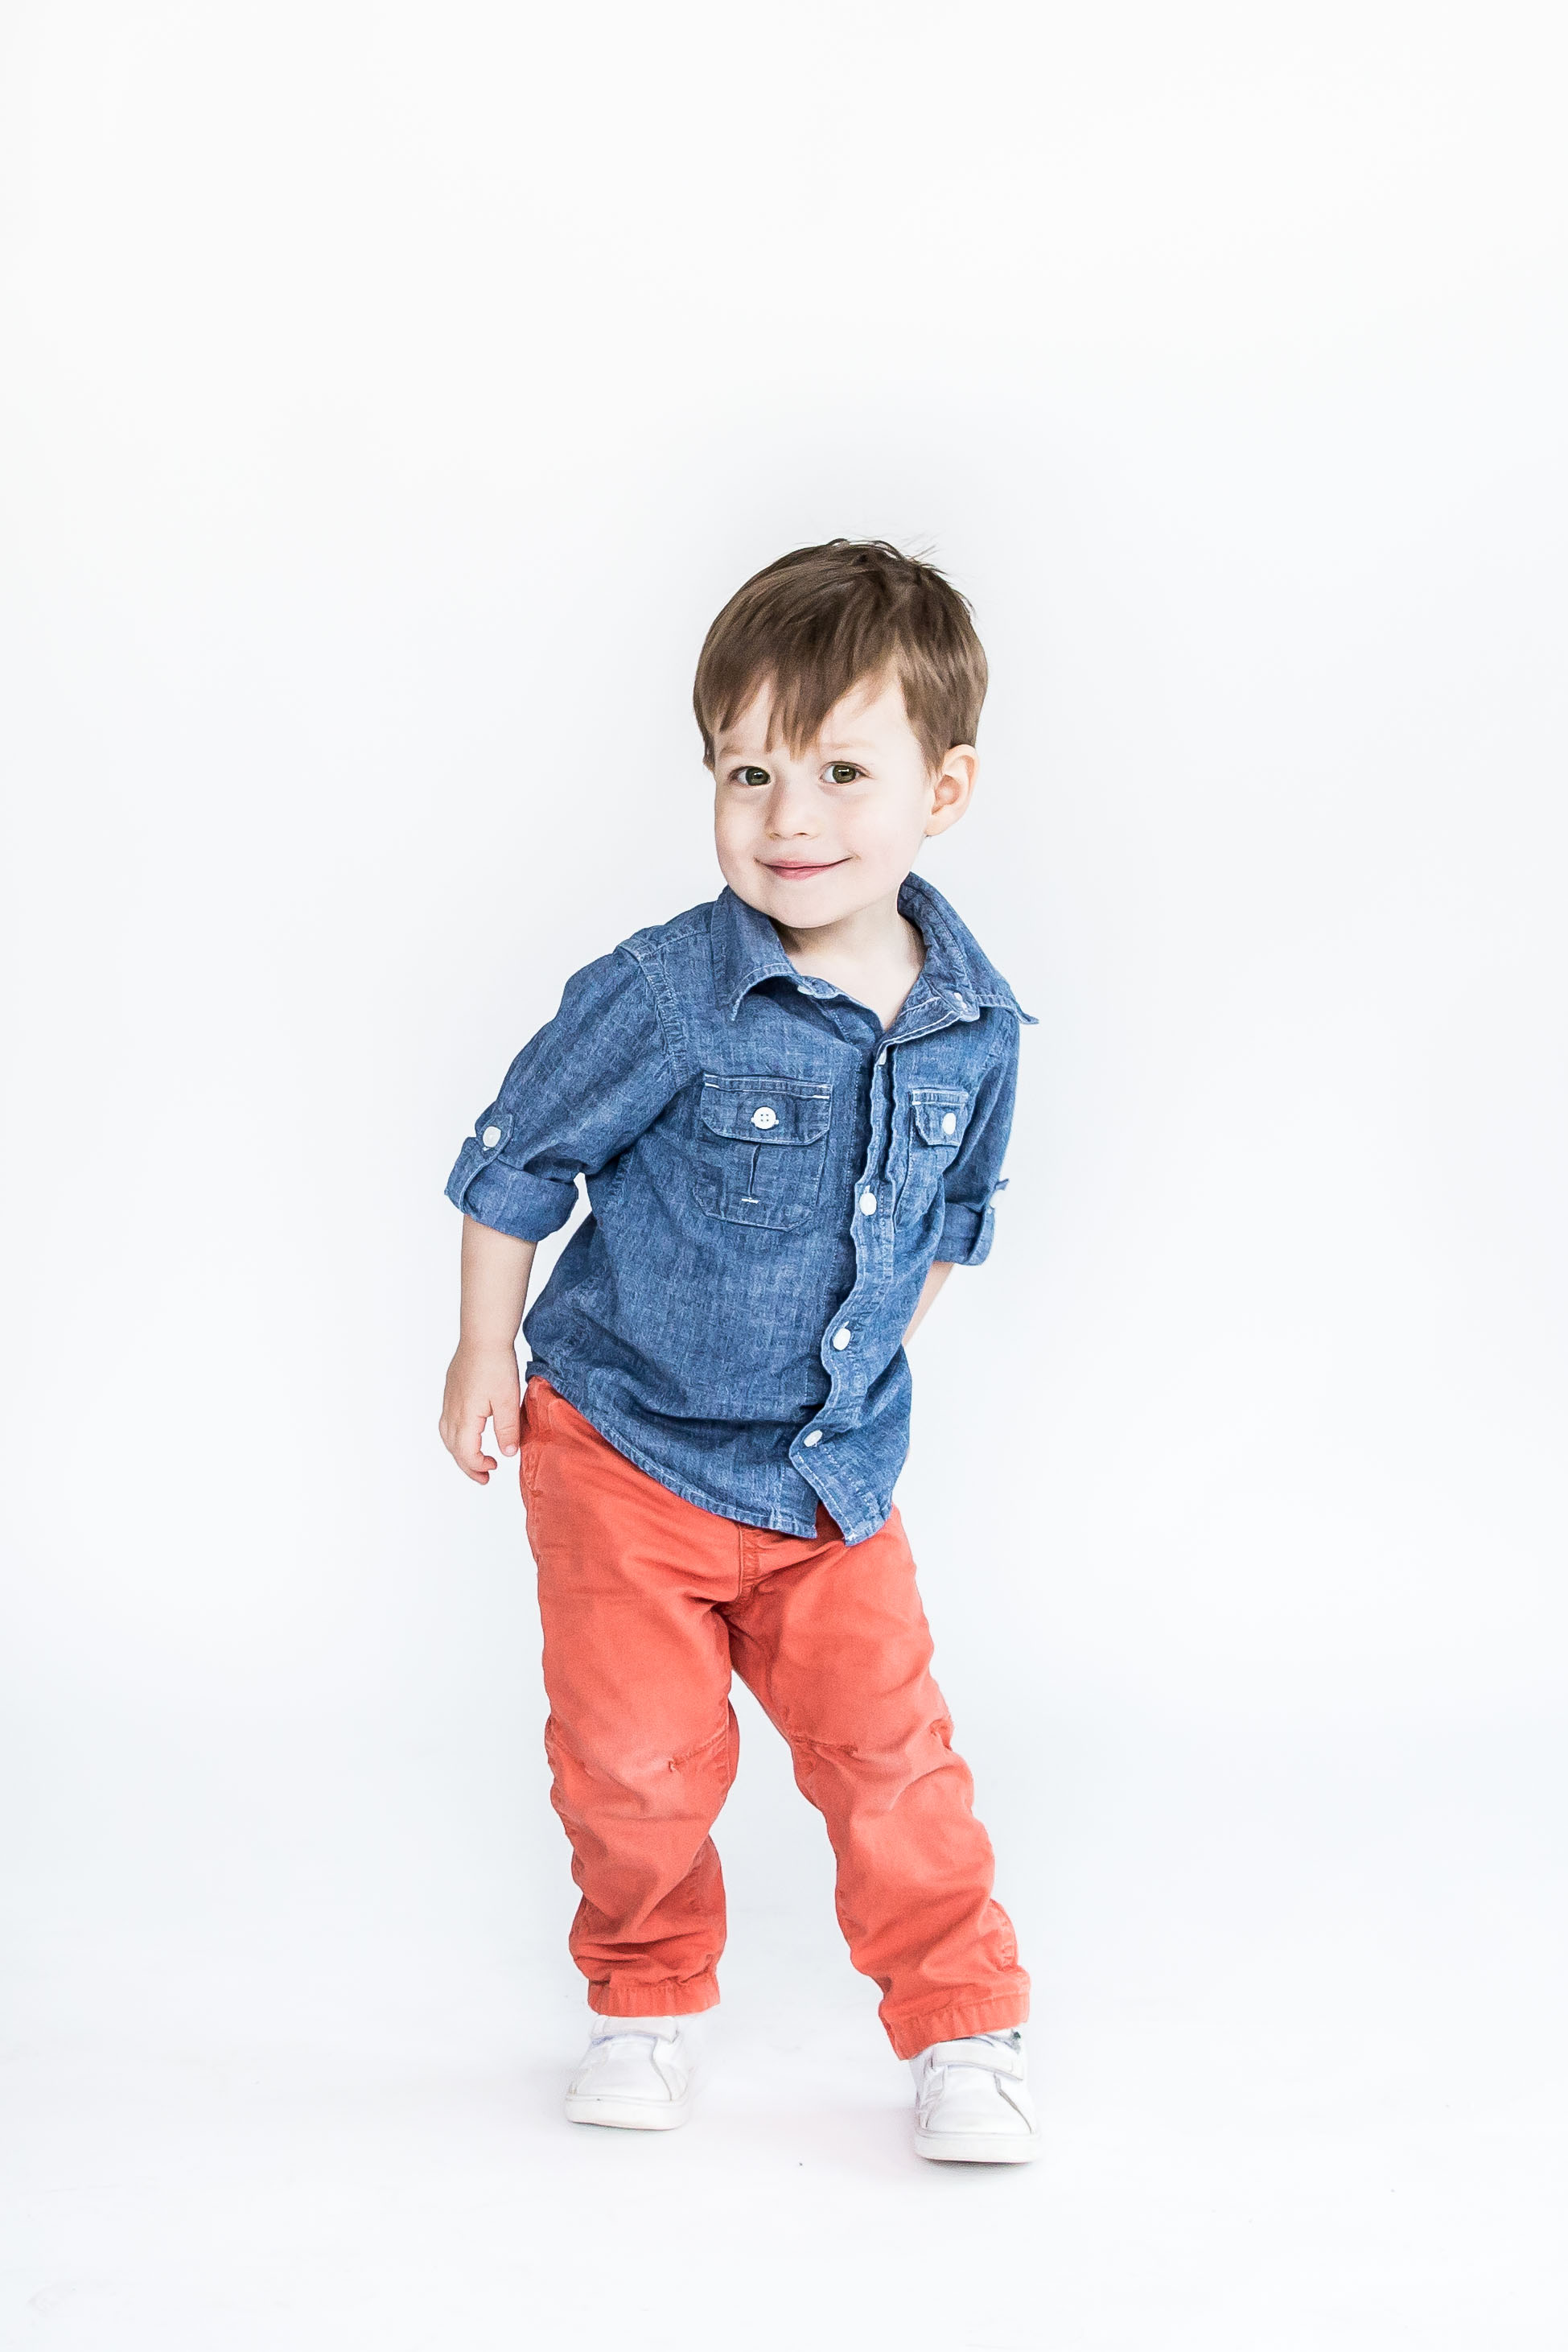 BasomKids_April_2018_1376.jpg